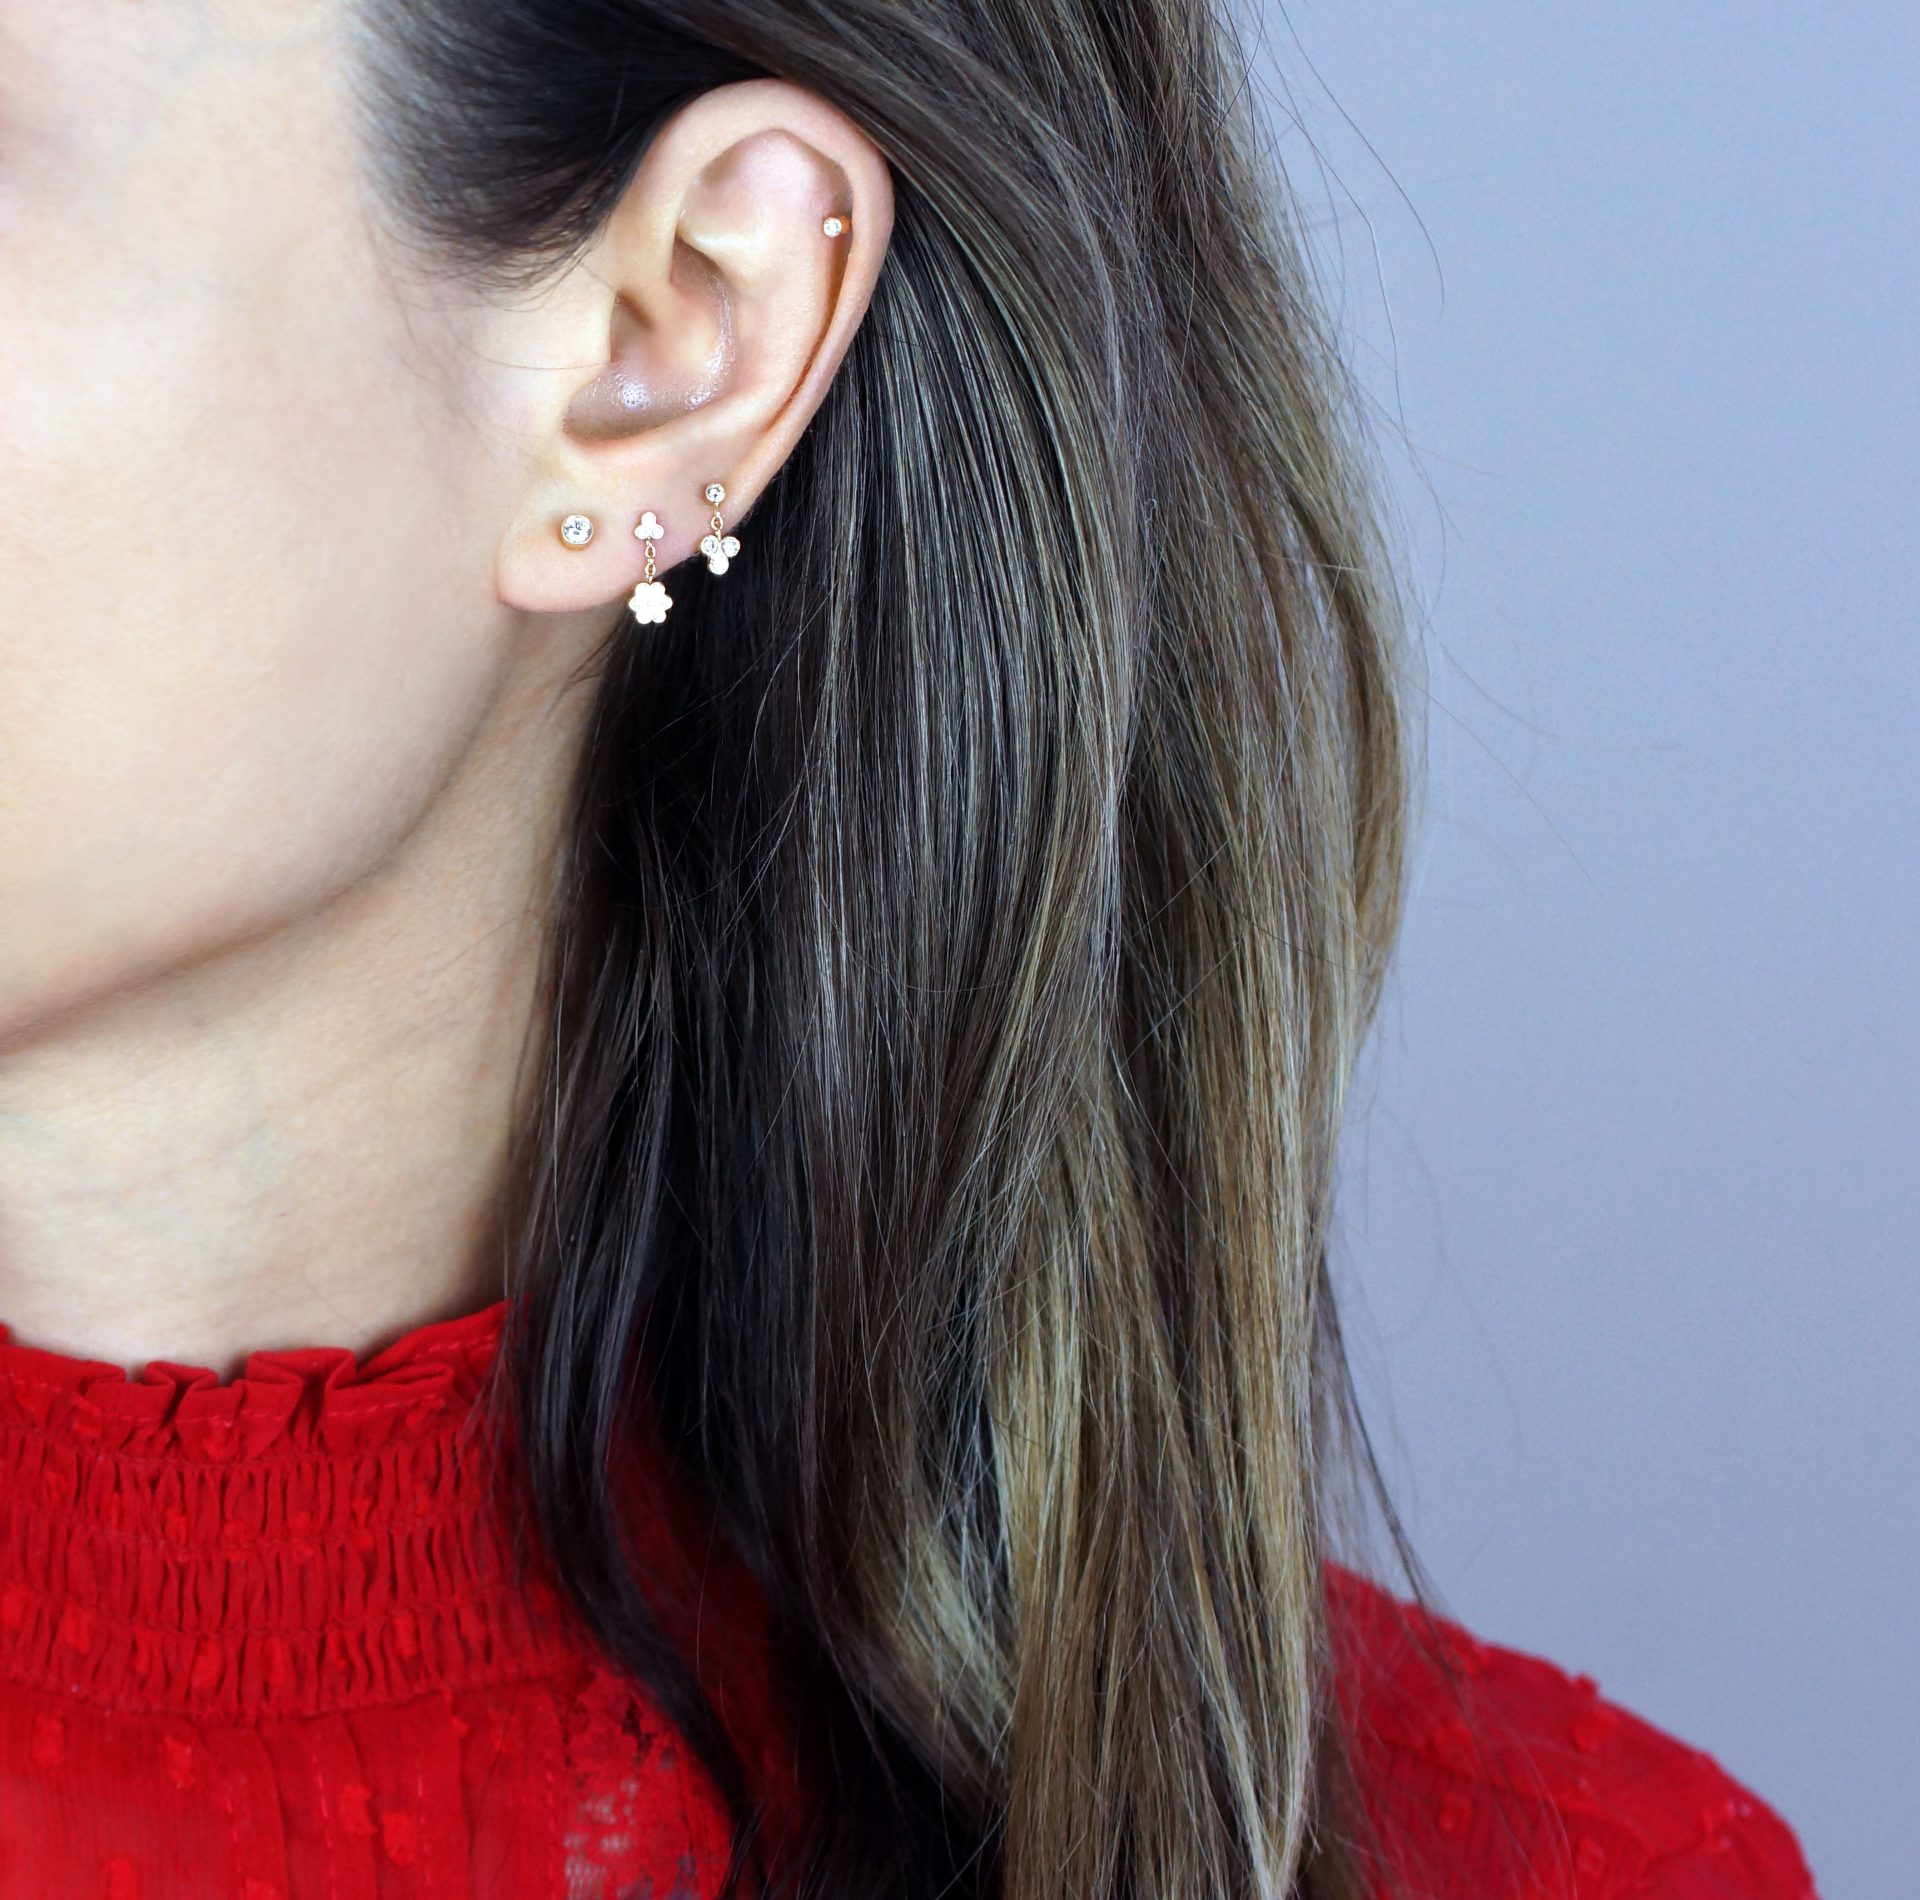 18k-gold-cartilage-earrings-hoops-huggies-lena-cohen-fine-jewellery-uk